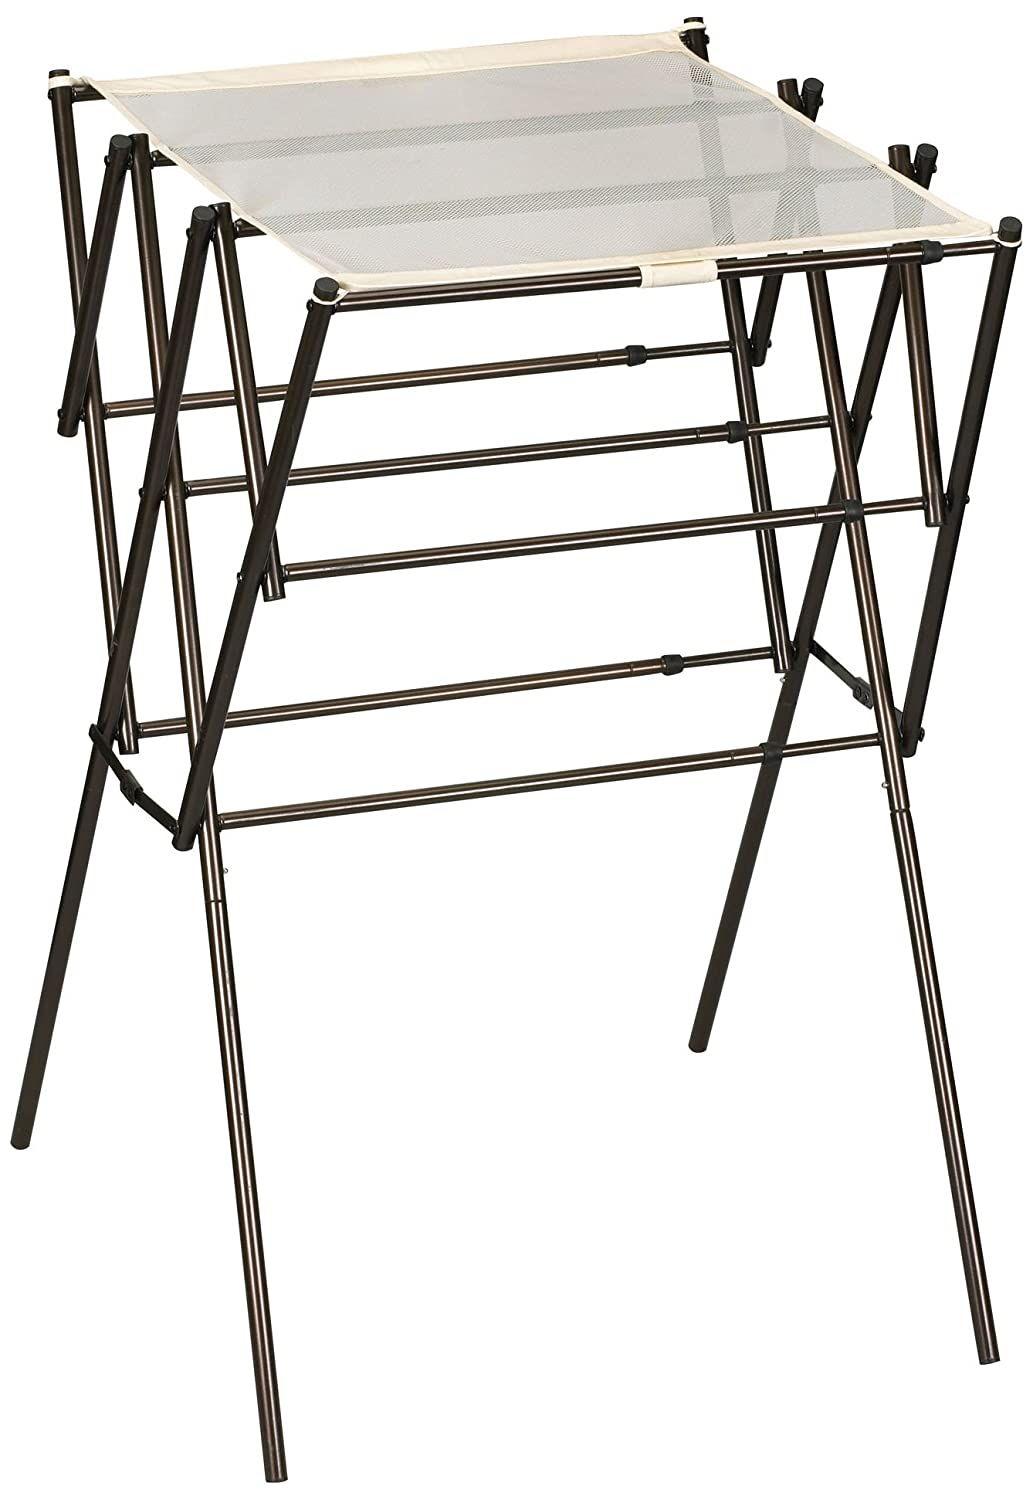 Household Essentials Expandable Clothes Drying Rack, Anitque Bronze 5175